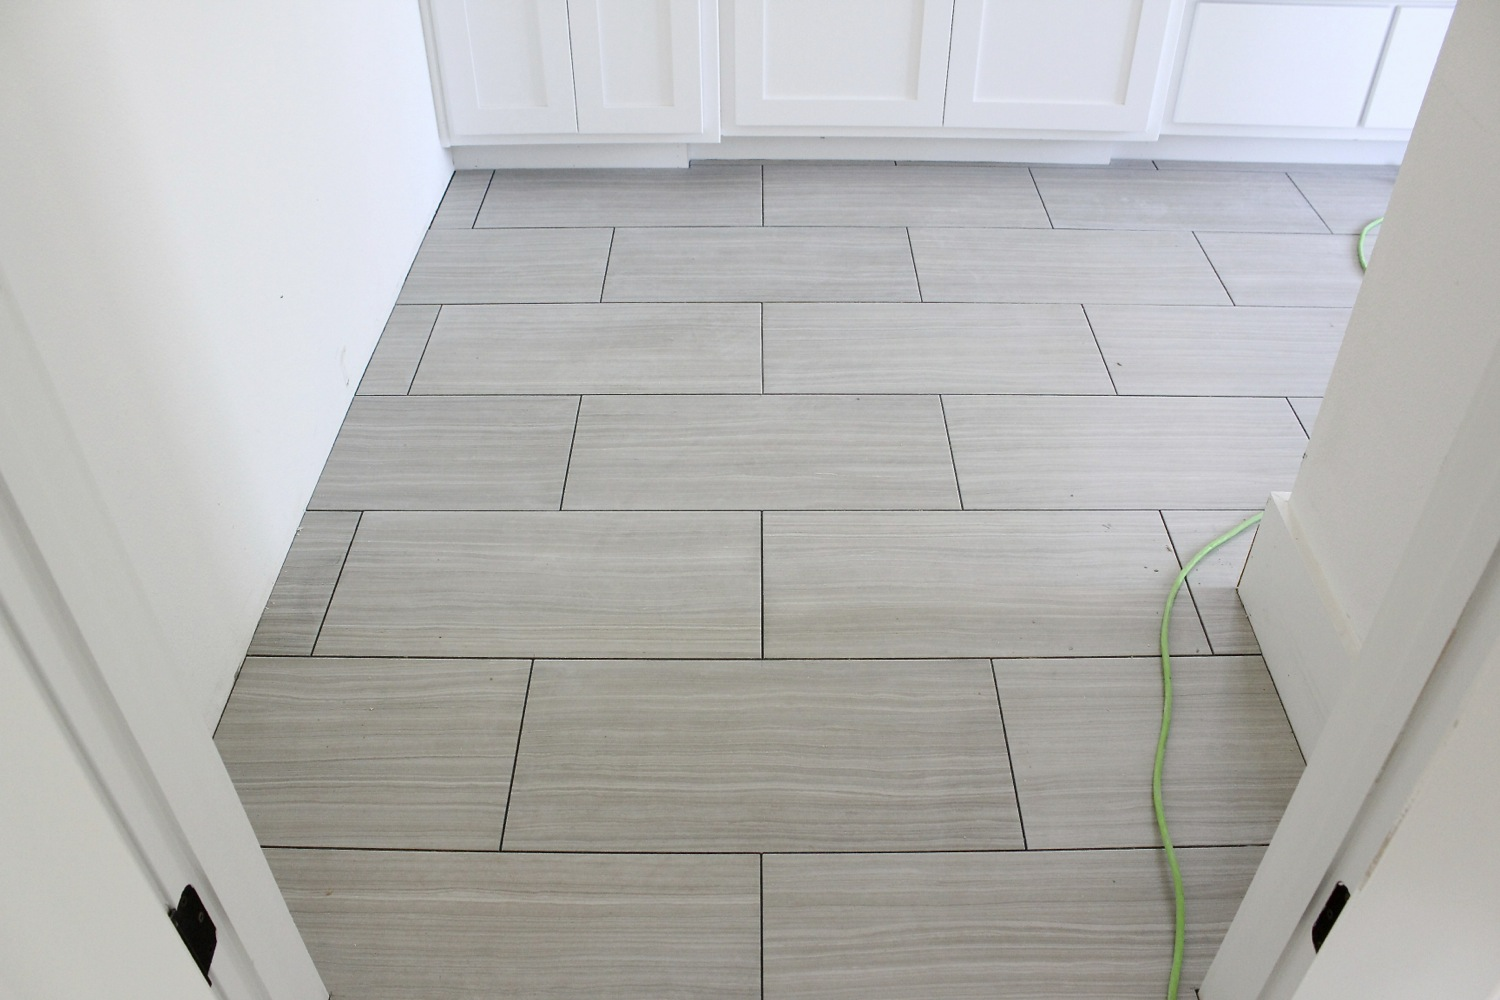 Bathroom floor tile layout 12x24 wood floors for 12x24 bathroom tile ideas